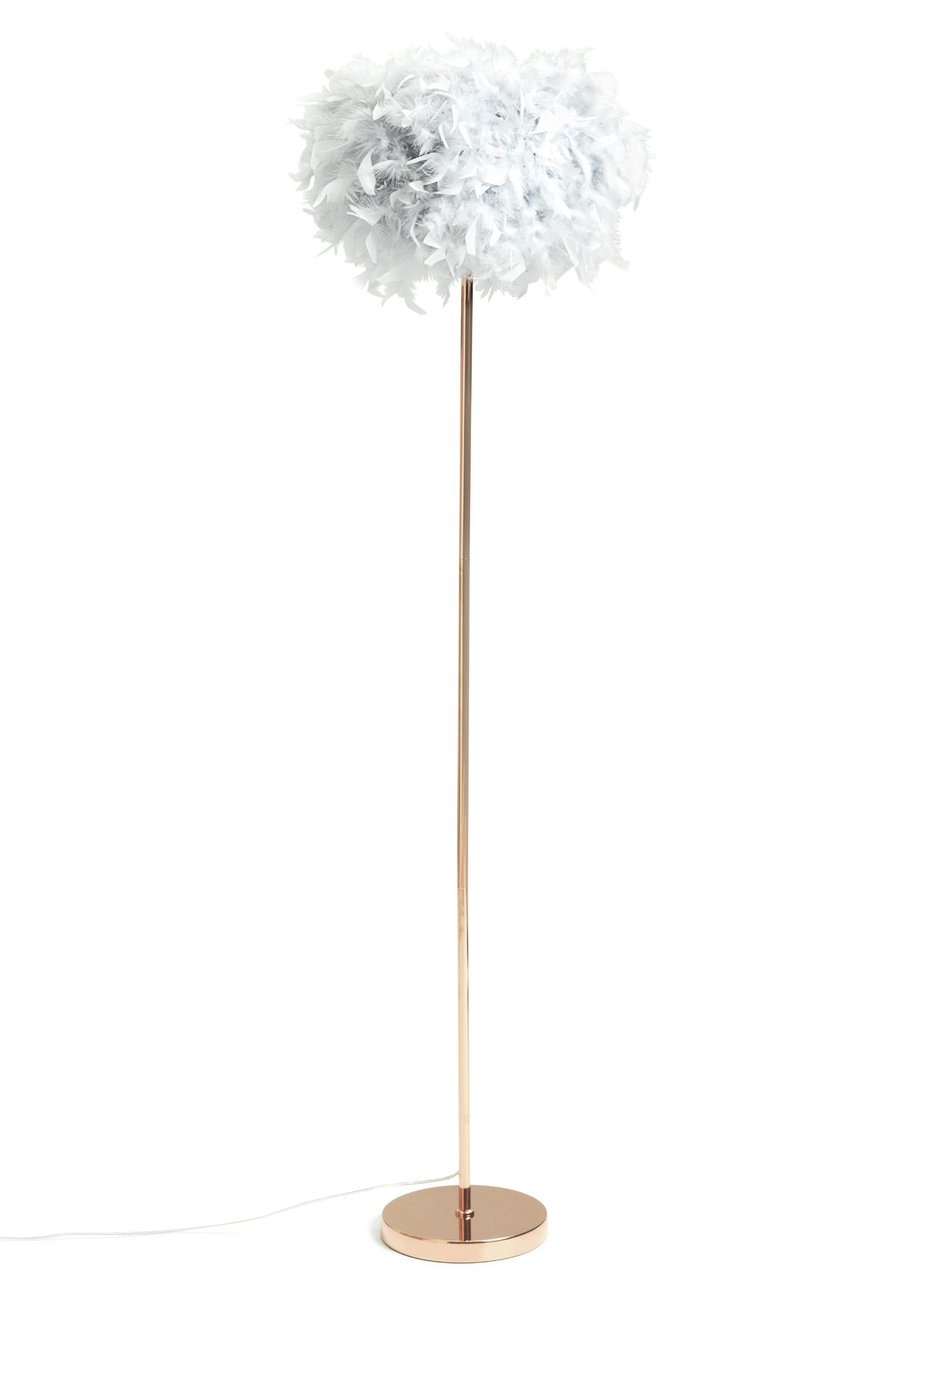 Habitat Feather Floor Lamp - Grey and Rose Gold